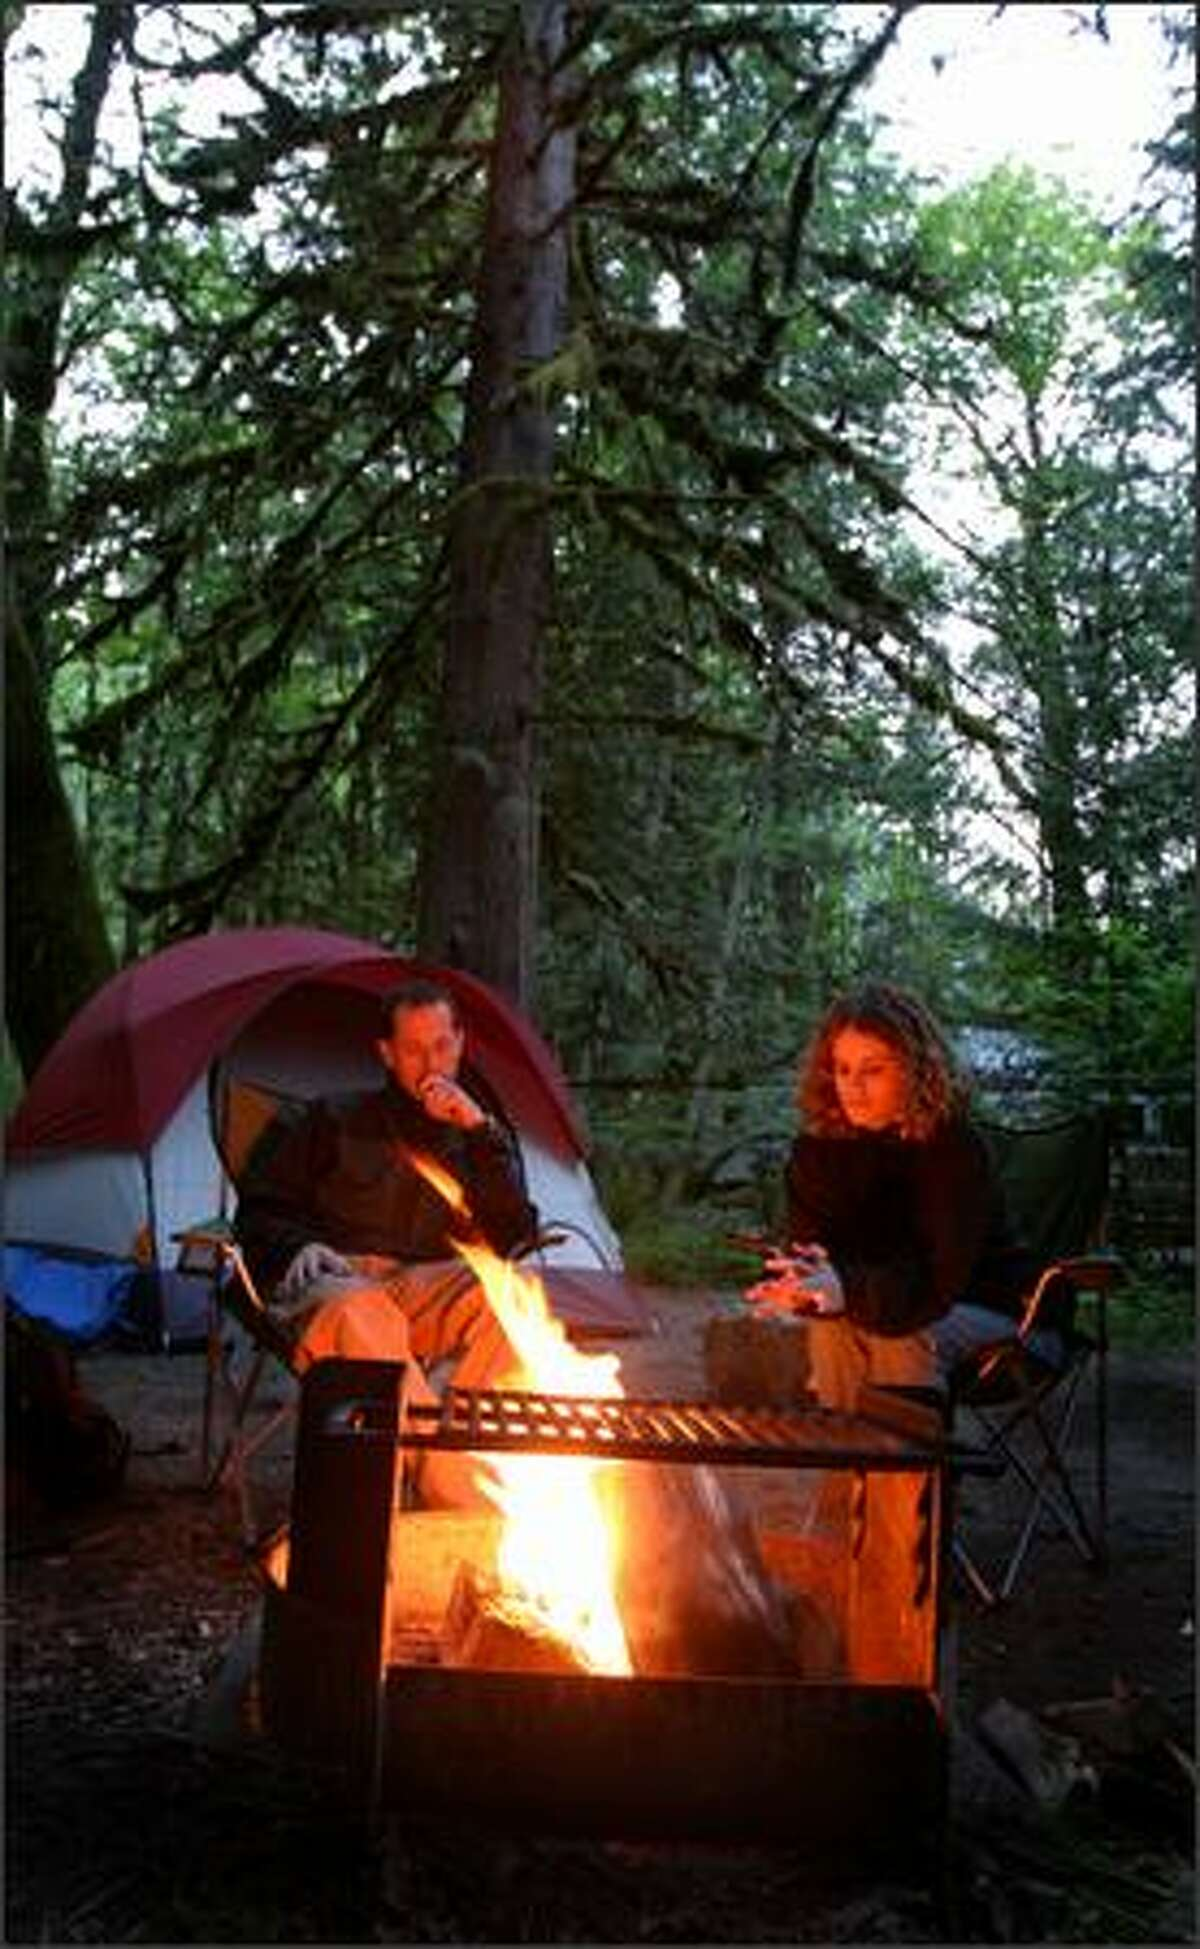 Whatcom County residents Craig and Jenna Lunde gaze into their campfire at Goodell Creek Campground. Usually, demand for the campsites is limited, but damage to Mount Rainier National Park and the closure of Rockport State Park may change that this year.